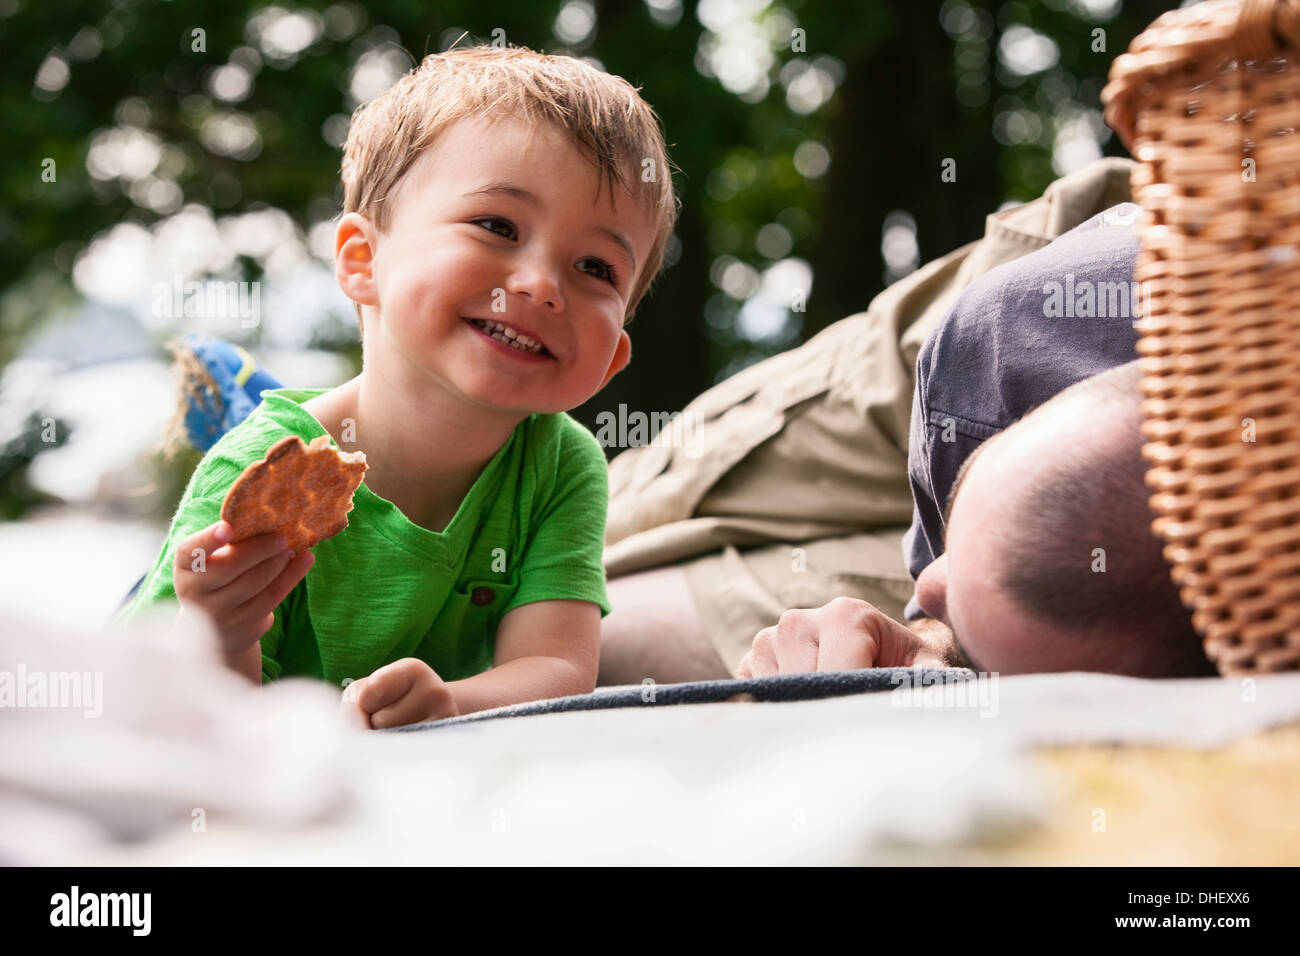 Boy enjoying picnic with father - Stock Image